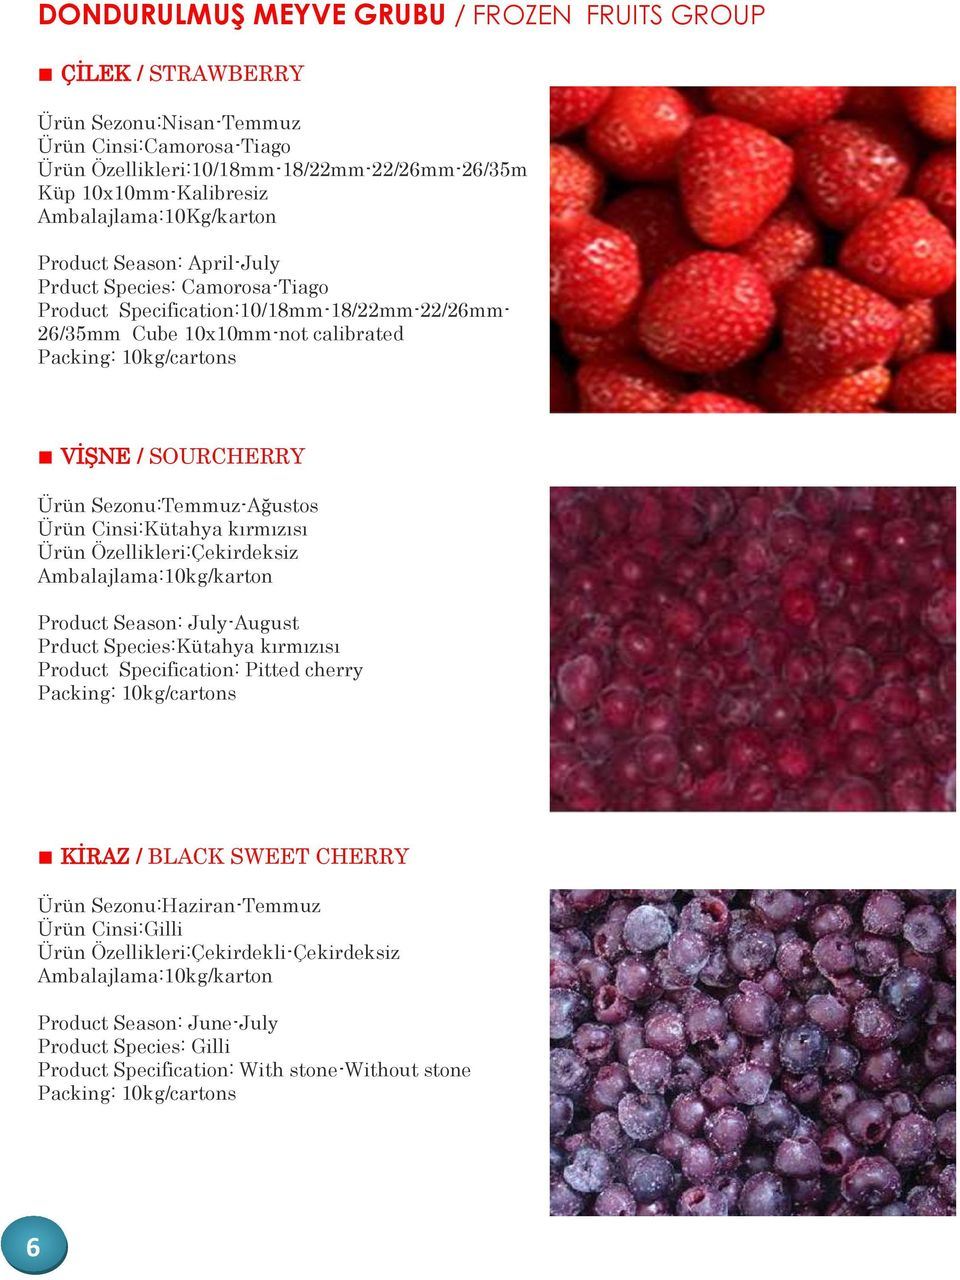 Sezonu:Temmuz-Ağustos Ürün Cinsi:Kütahya kırmızısı Ürün Özellikleri:Çekirdeksiz Product Season: July-August Prduct Species:Kütahya kırmızısı Product Specification: Pitted cherry KİRAZ /